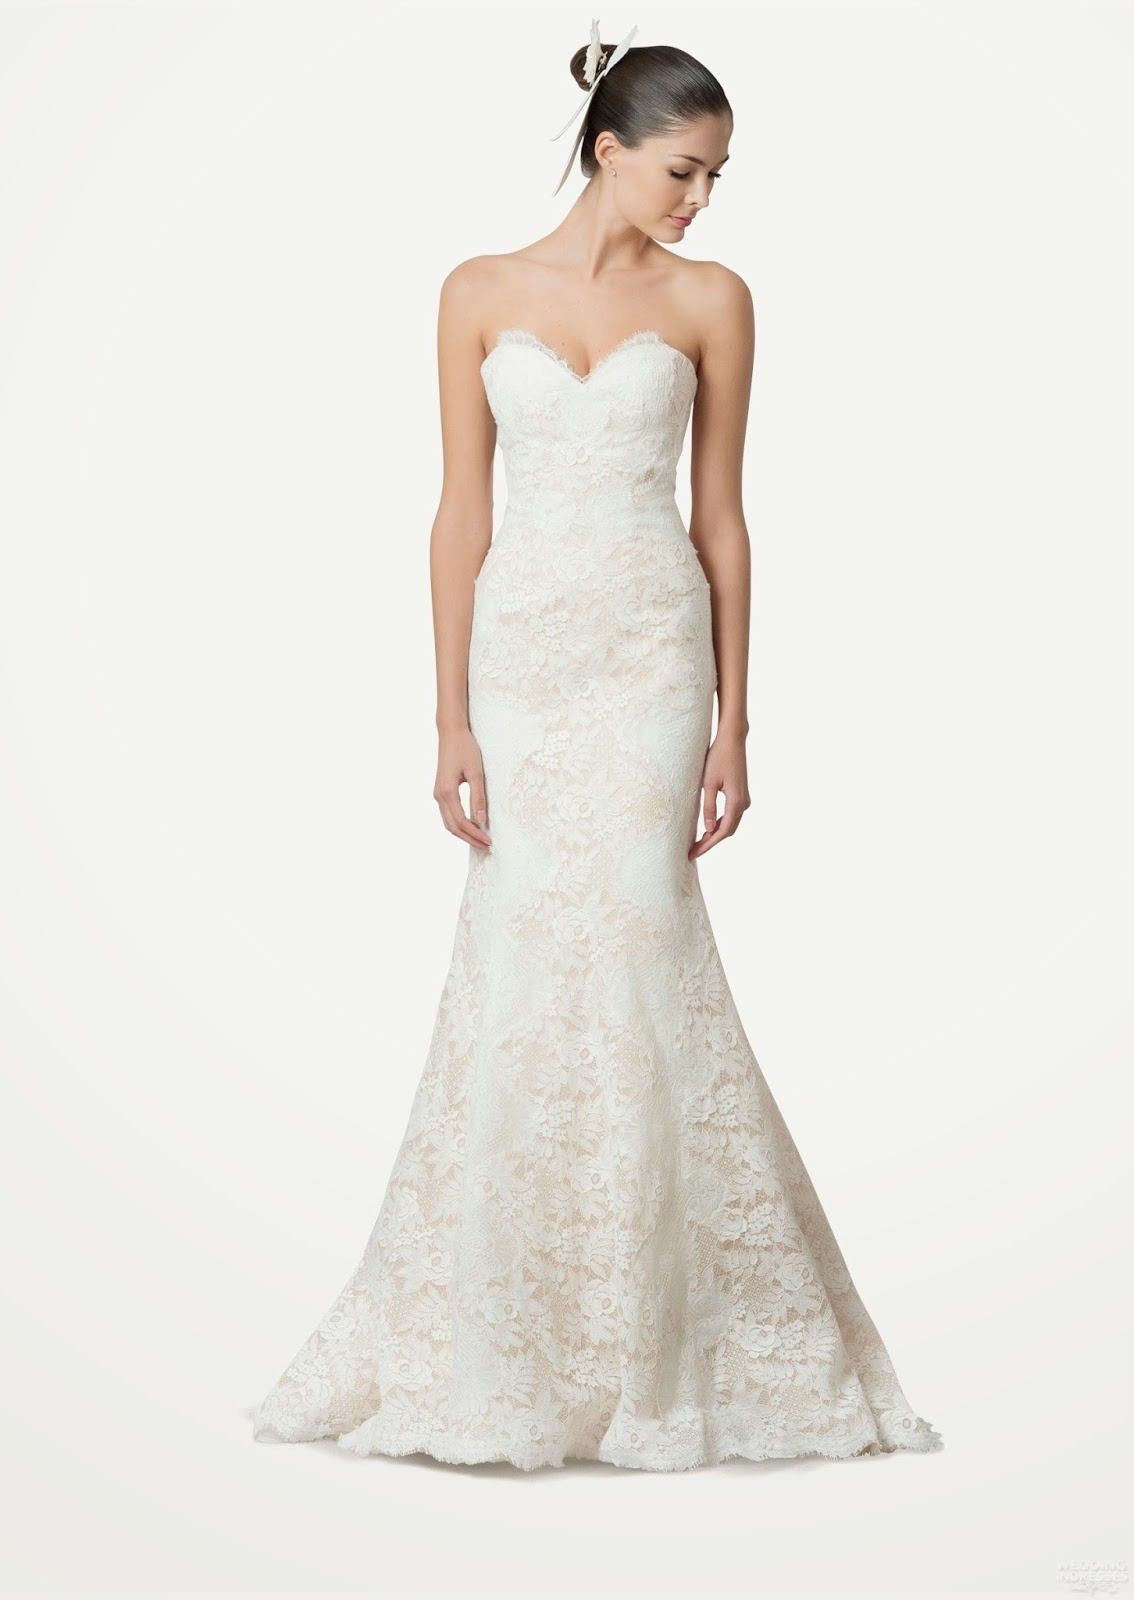 Carolina Herrera Bridal Fall 2015 Wedding Dresses